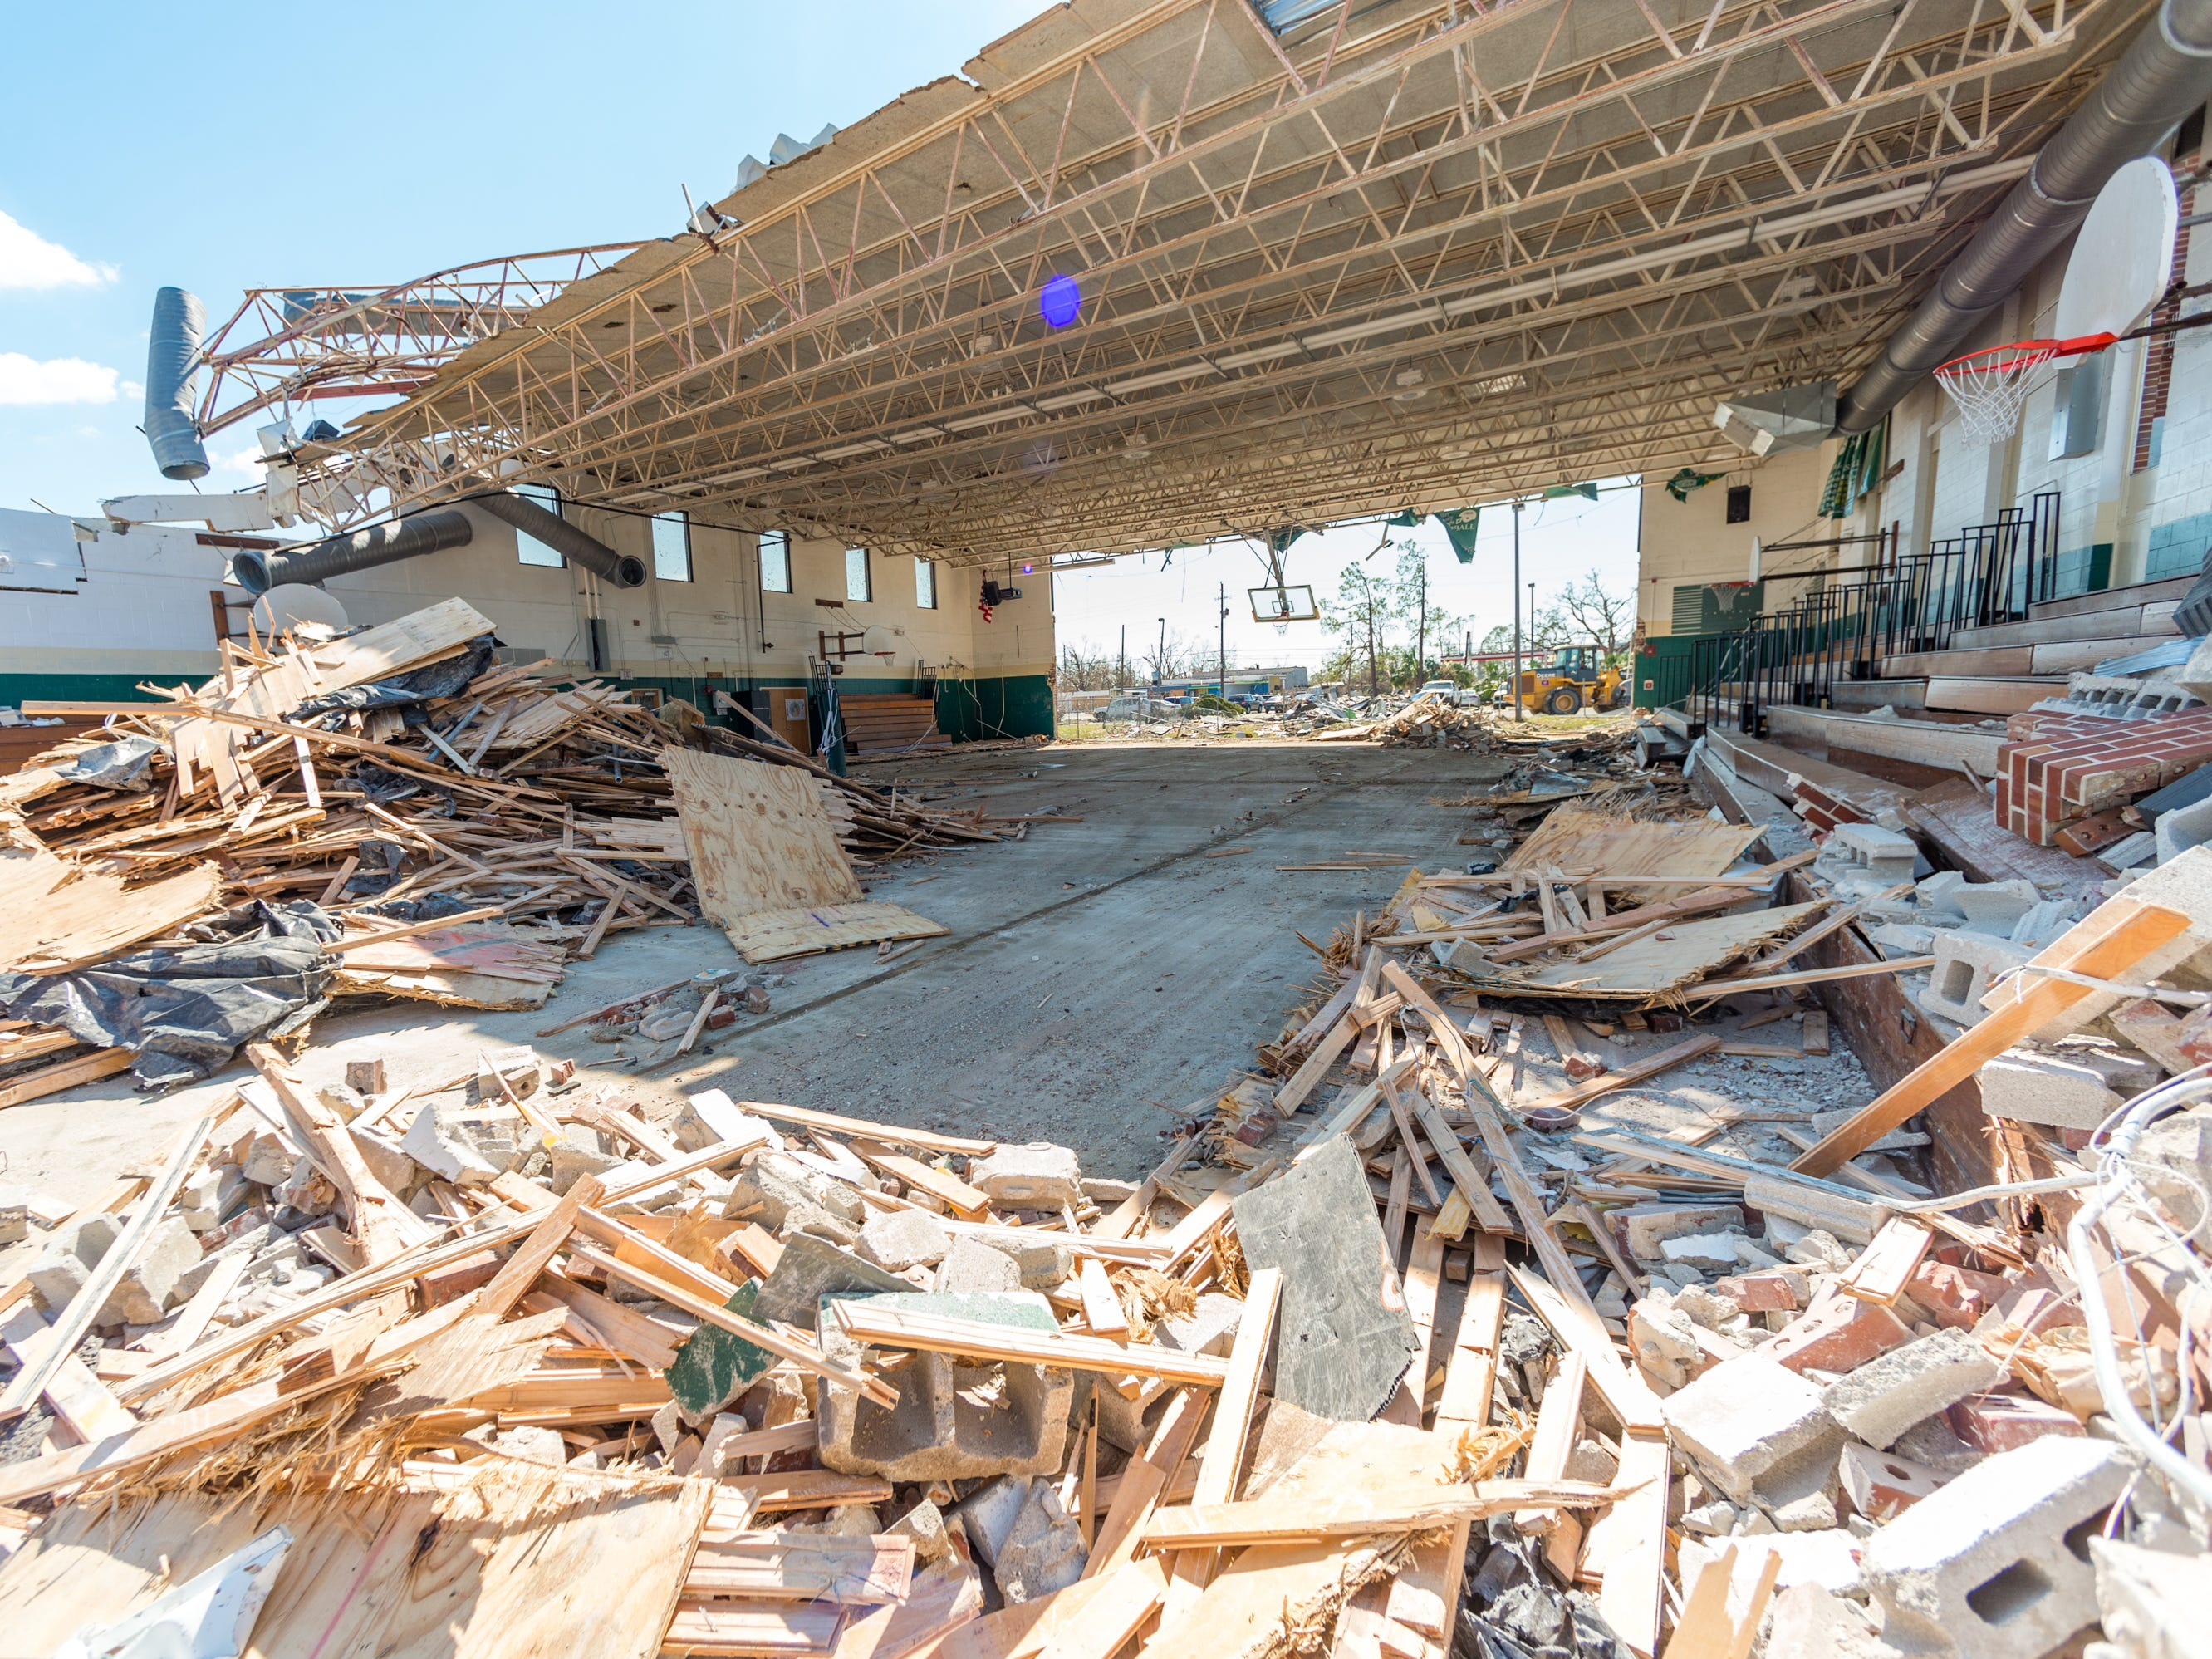 Jinks Middle School gym in Panama City, Fla. was heavily damaged by Hurricane Michael, Oct. 14, 2018.